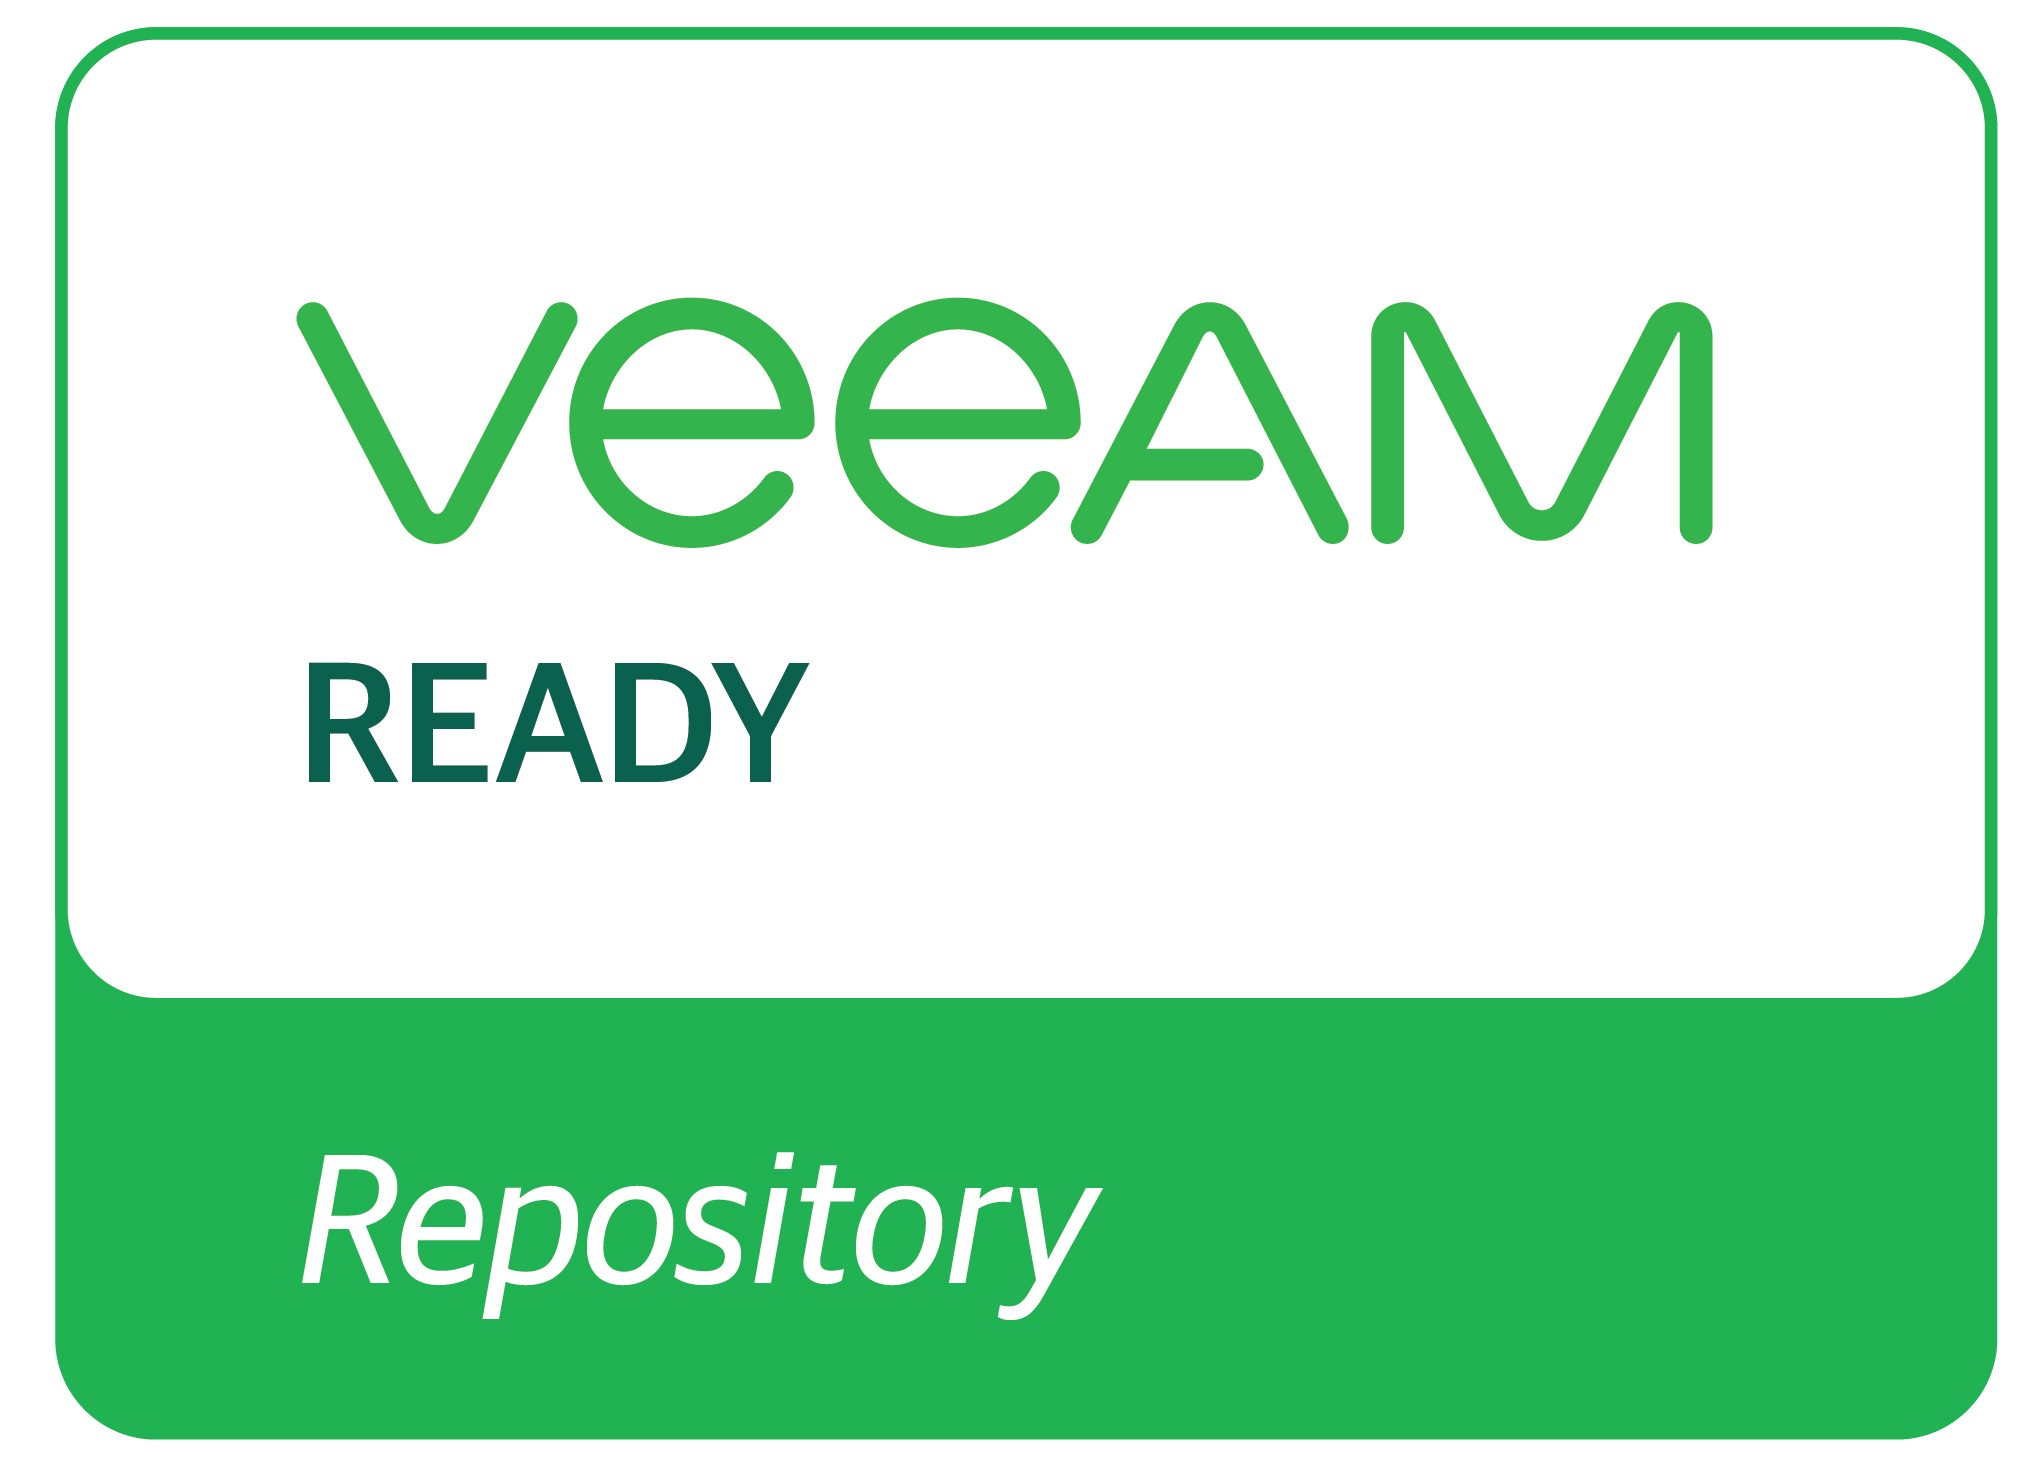 veeamready_repository.png